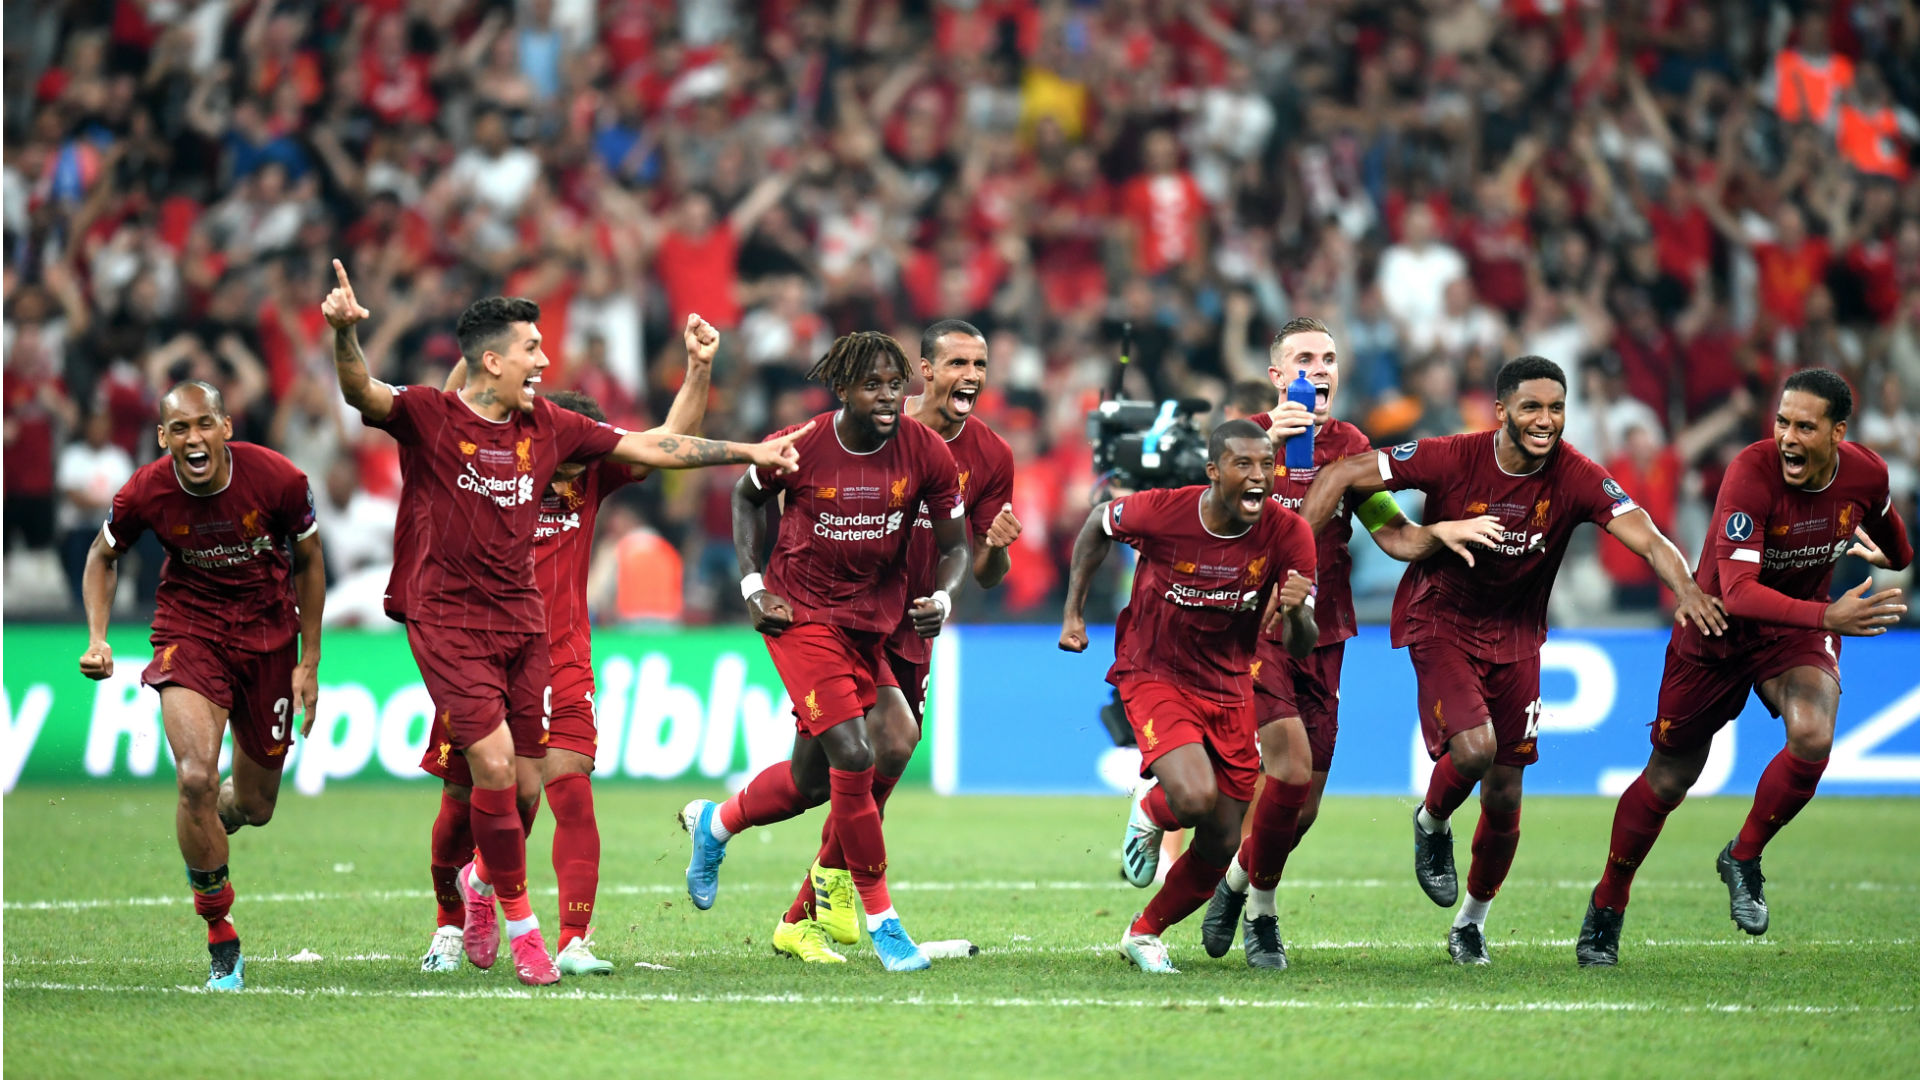 Liverpool Vs Chelsea Results Final Score Highlights From 2019 Uefa Super Cup Sporting News